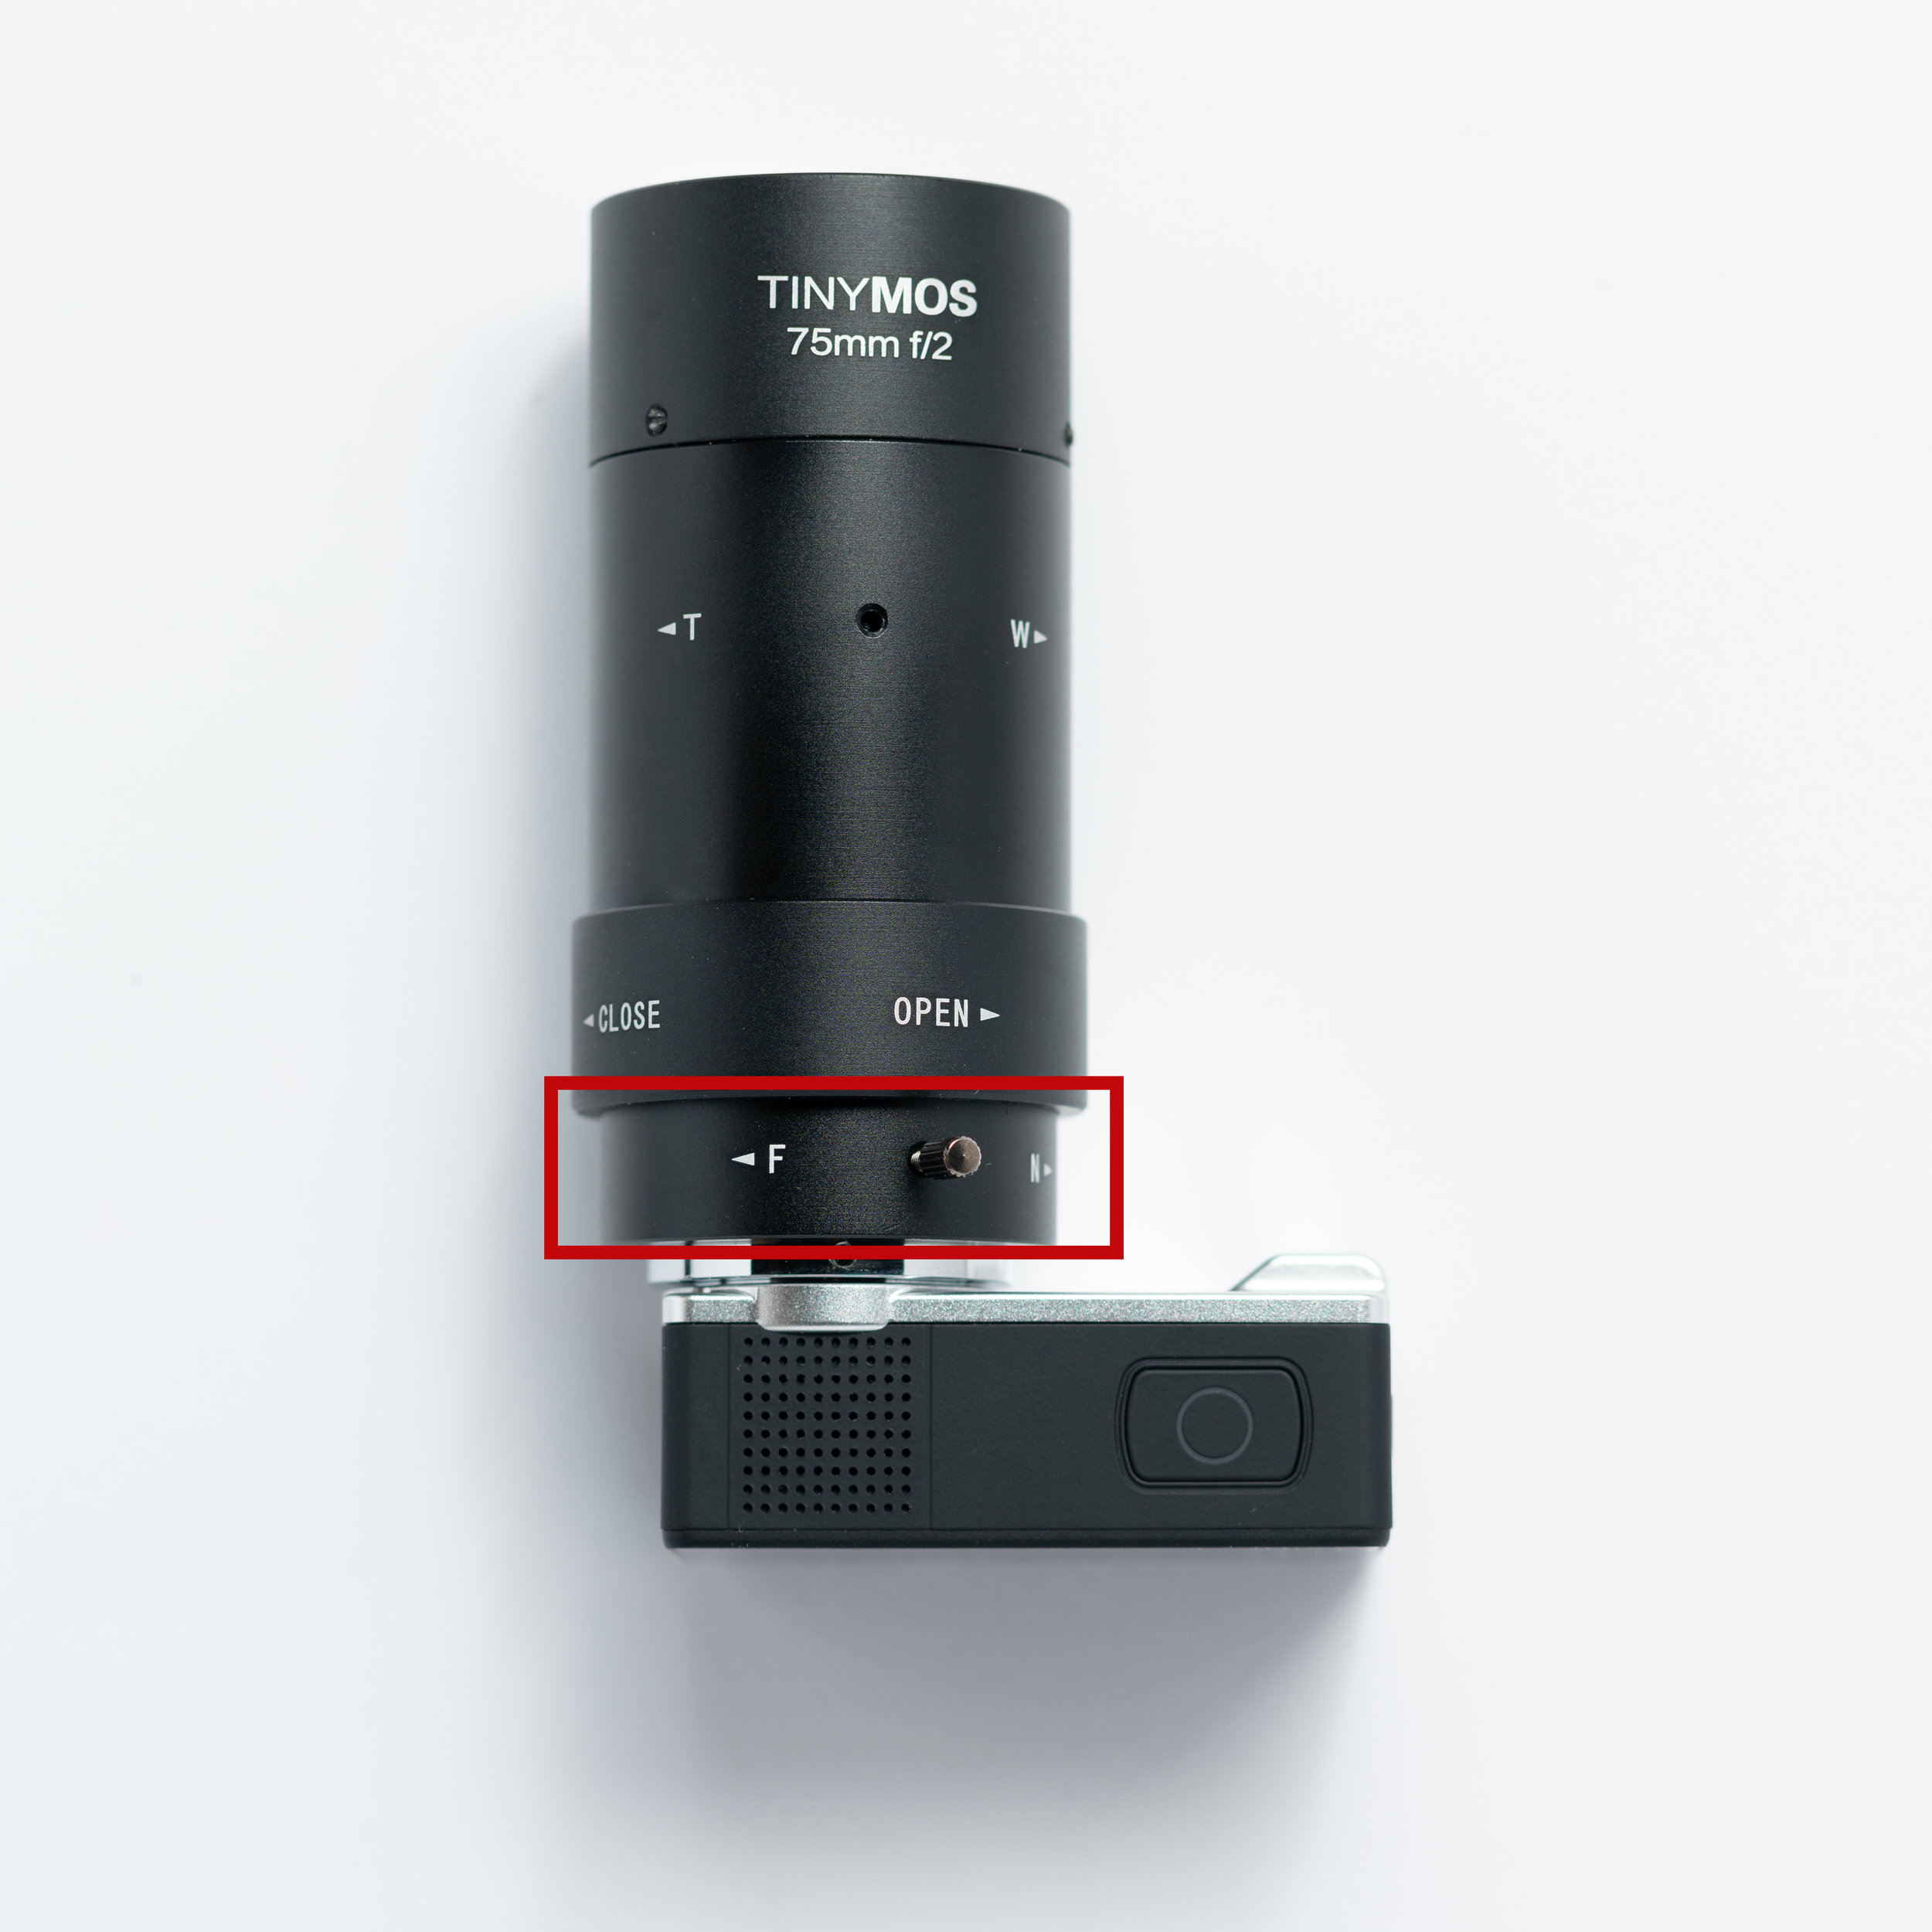 This ring adjusts the focus the lens - F for Far, N for Near.